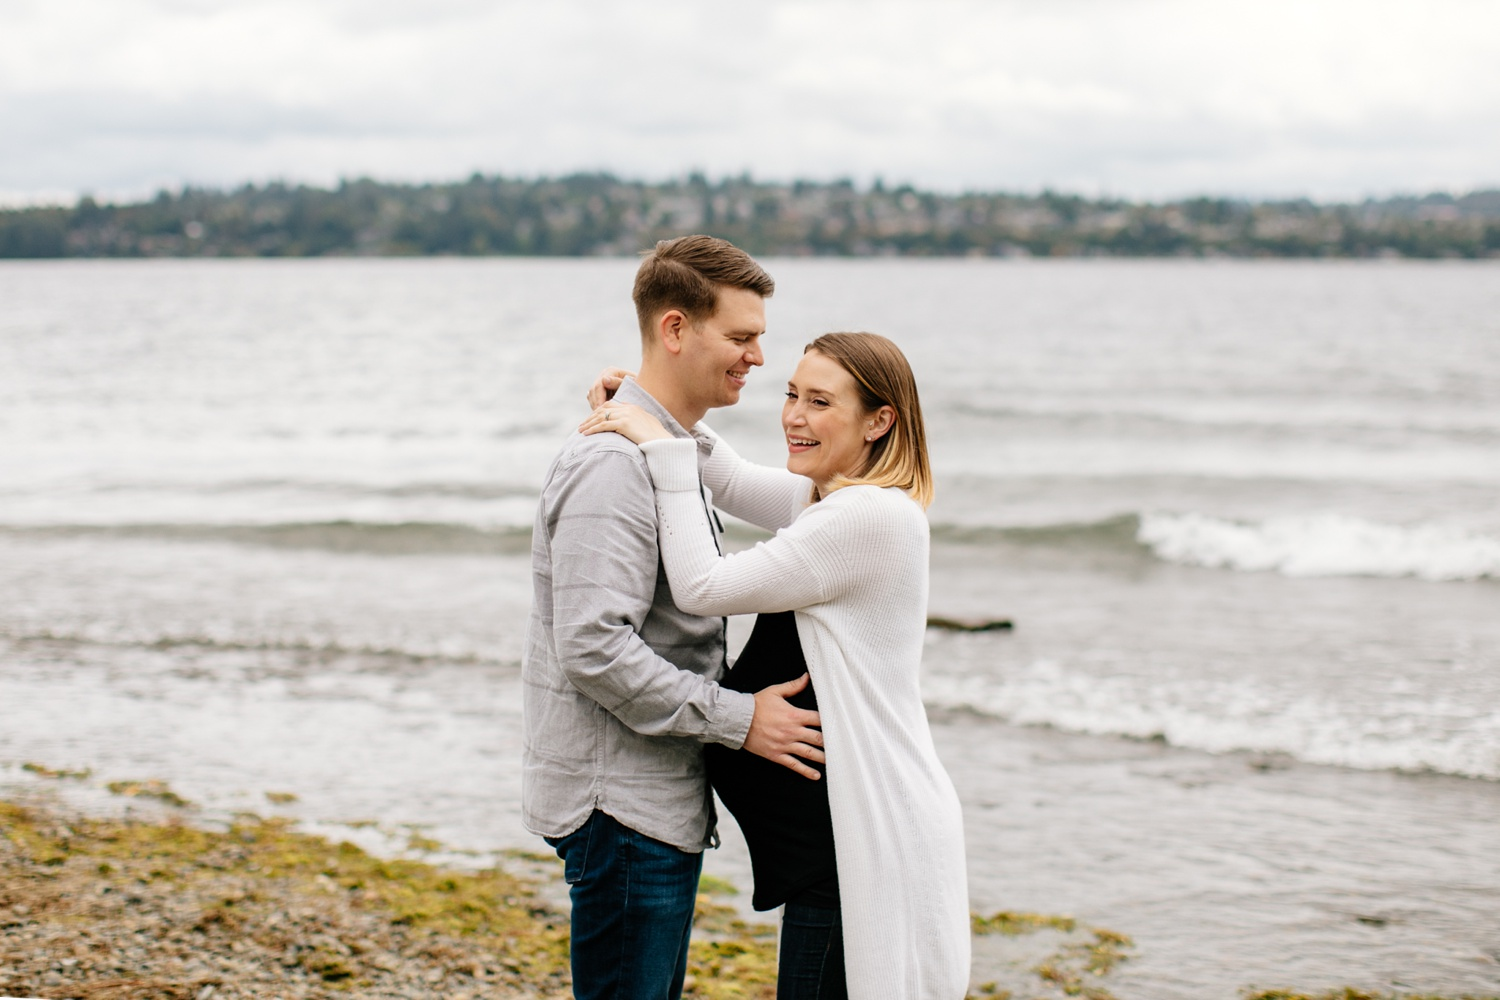 catie-bergman-seattle-family-photographer-catie-bergman-photography-pnw-newborn-portrait-lifestylephotography_0023.jpg